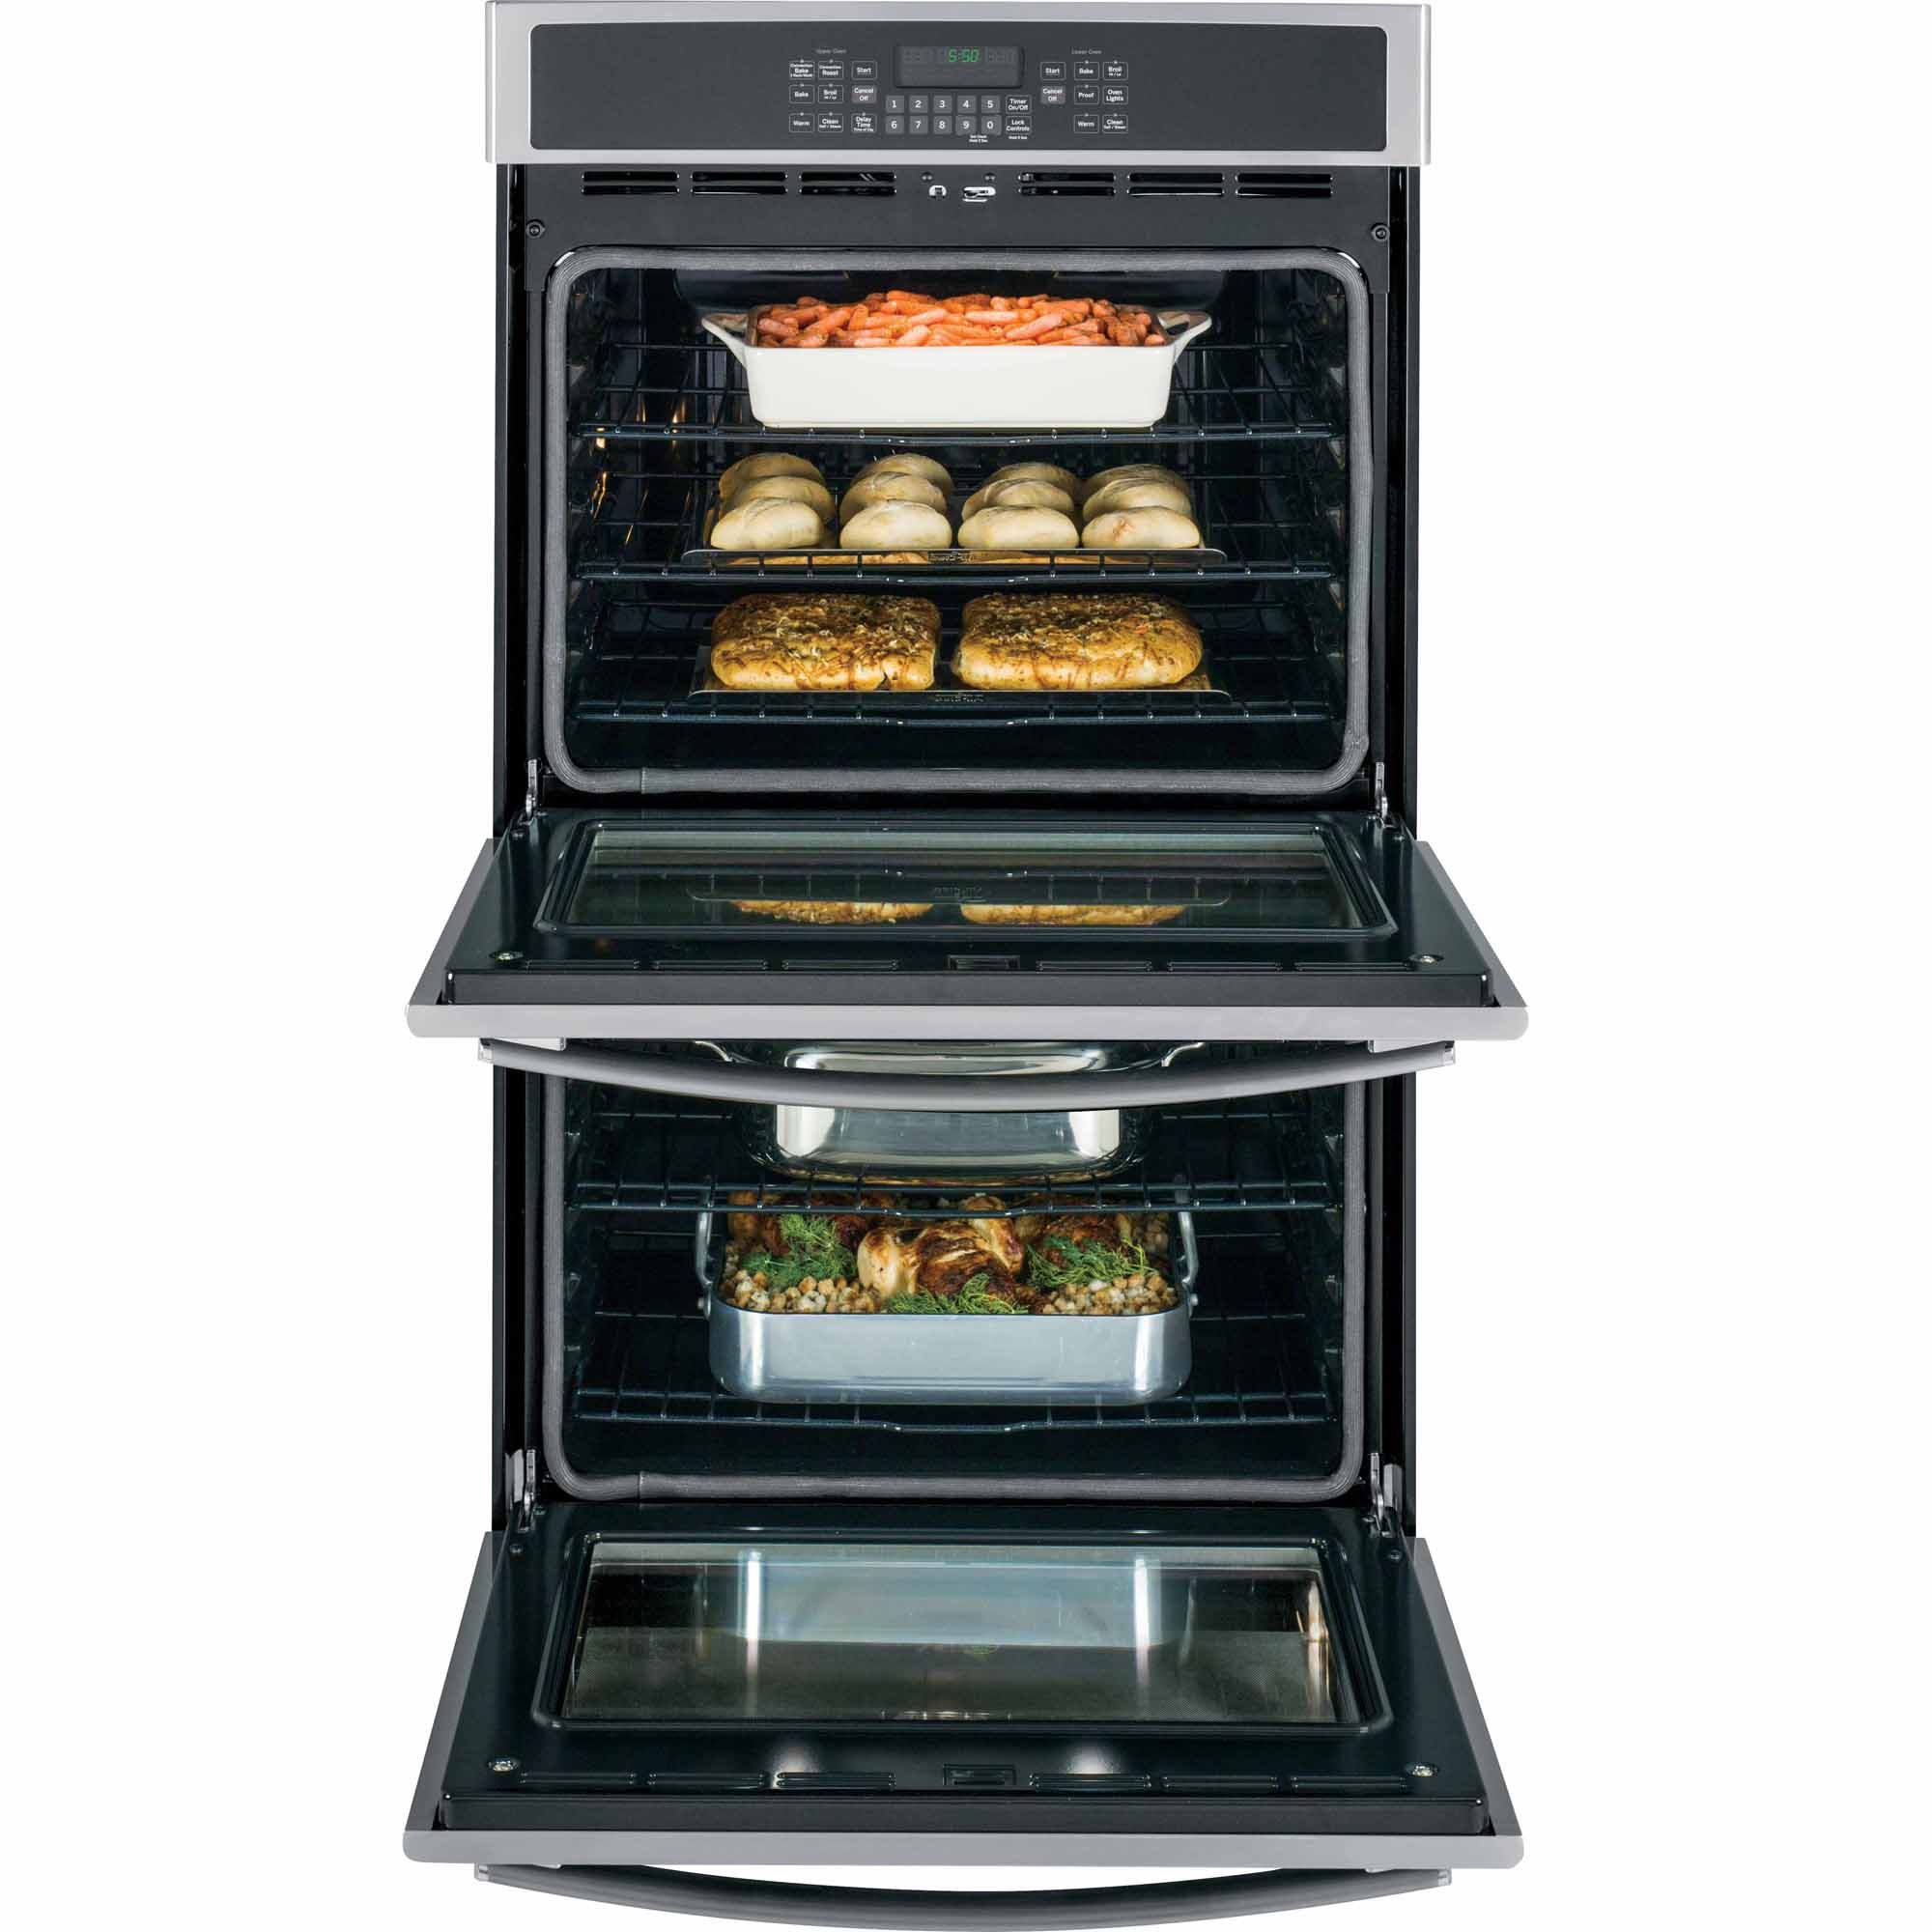 "GE Appliances 30"" Built-In Double Wall Oven w/ Convection - Stainless"